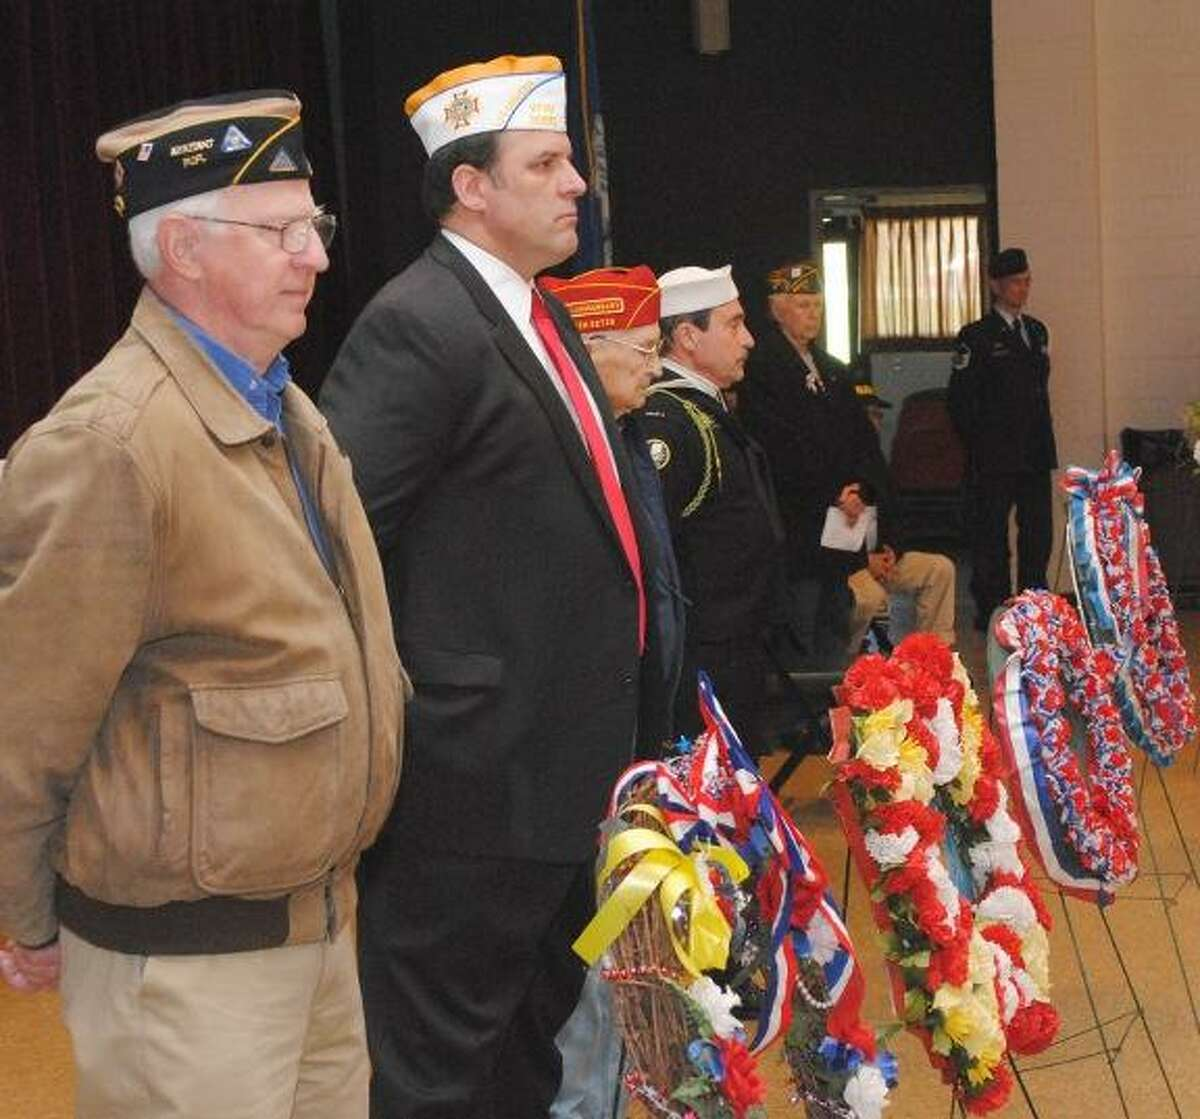 MIKE AGOGLIATI/ Register Citizen Joe Pathe, left and Bob Hunter, right were two of more than 30 veterans that participated in a Vietnam remembrance ceremony held at Coe Memorial Park Friday.